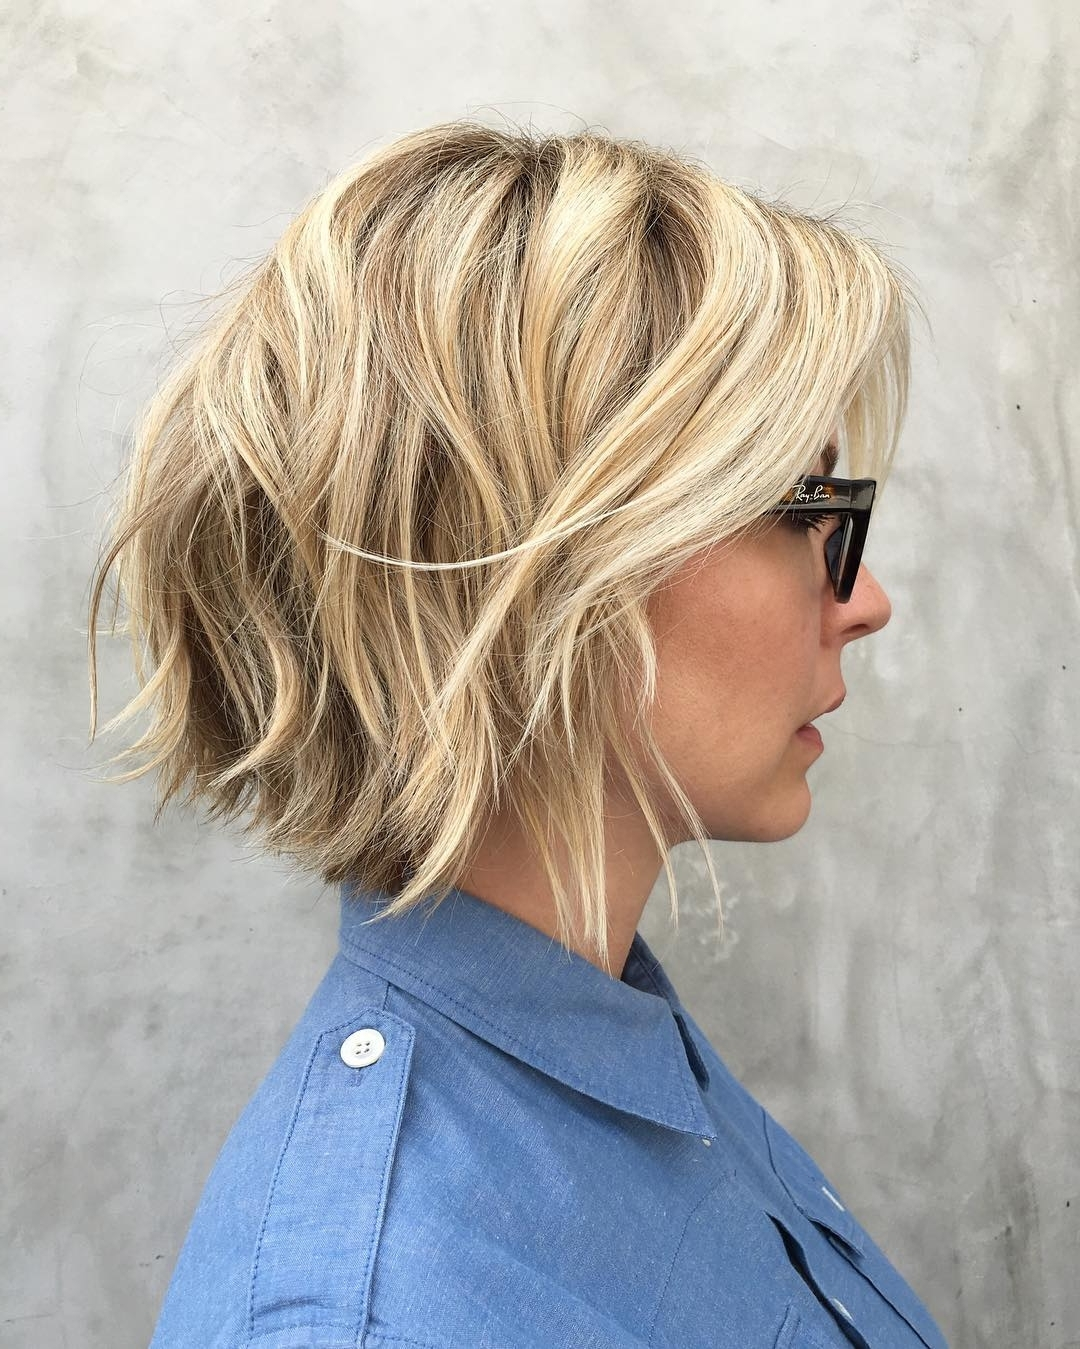 30 Trendiest Shaggy Bob Haircuts Of The Season For Trendy Shaggy Chin Length Blonde Bob Hairstyles (View 3 of 20)